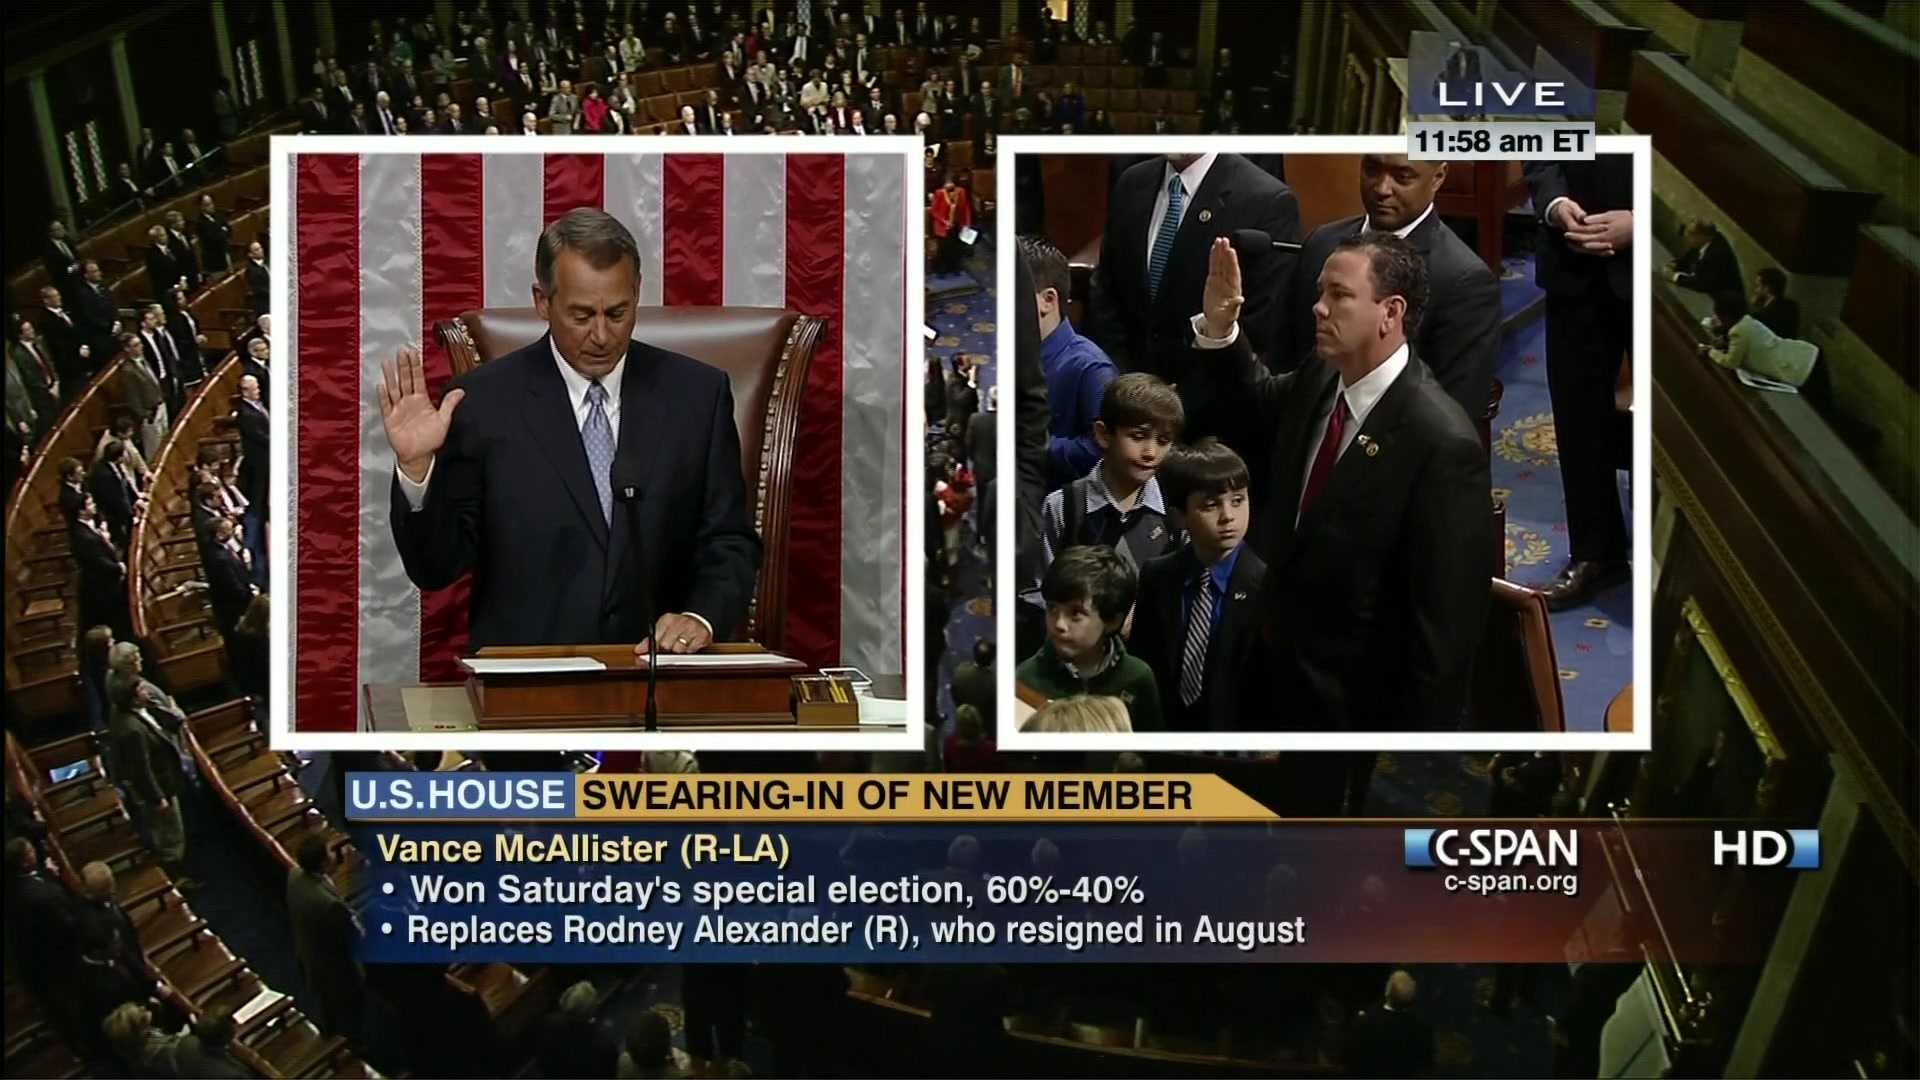 Vance McAllister (R-La) being sworn in.